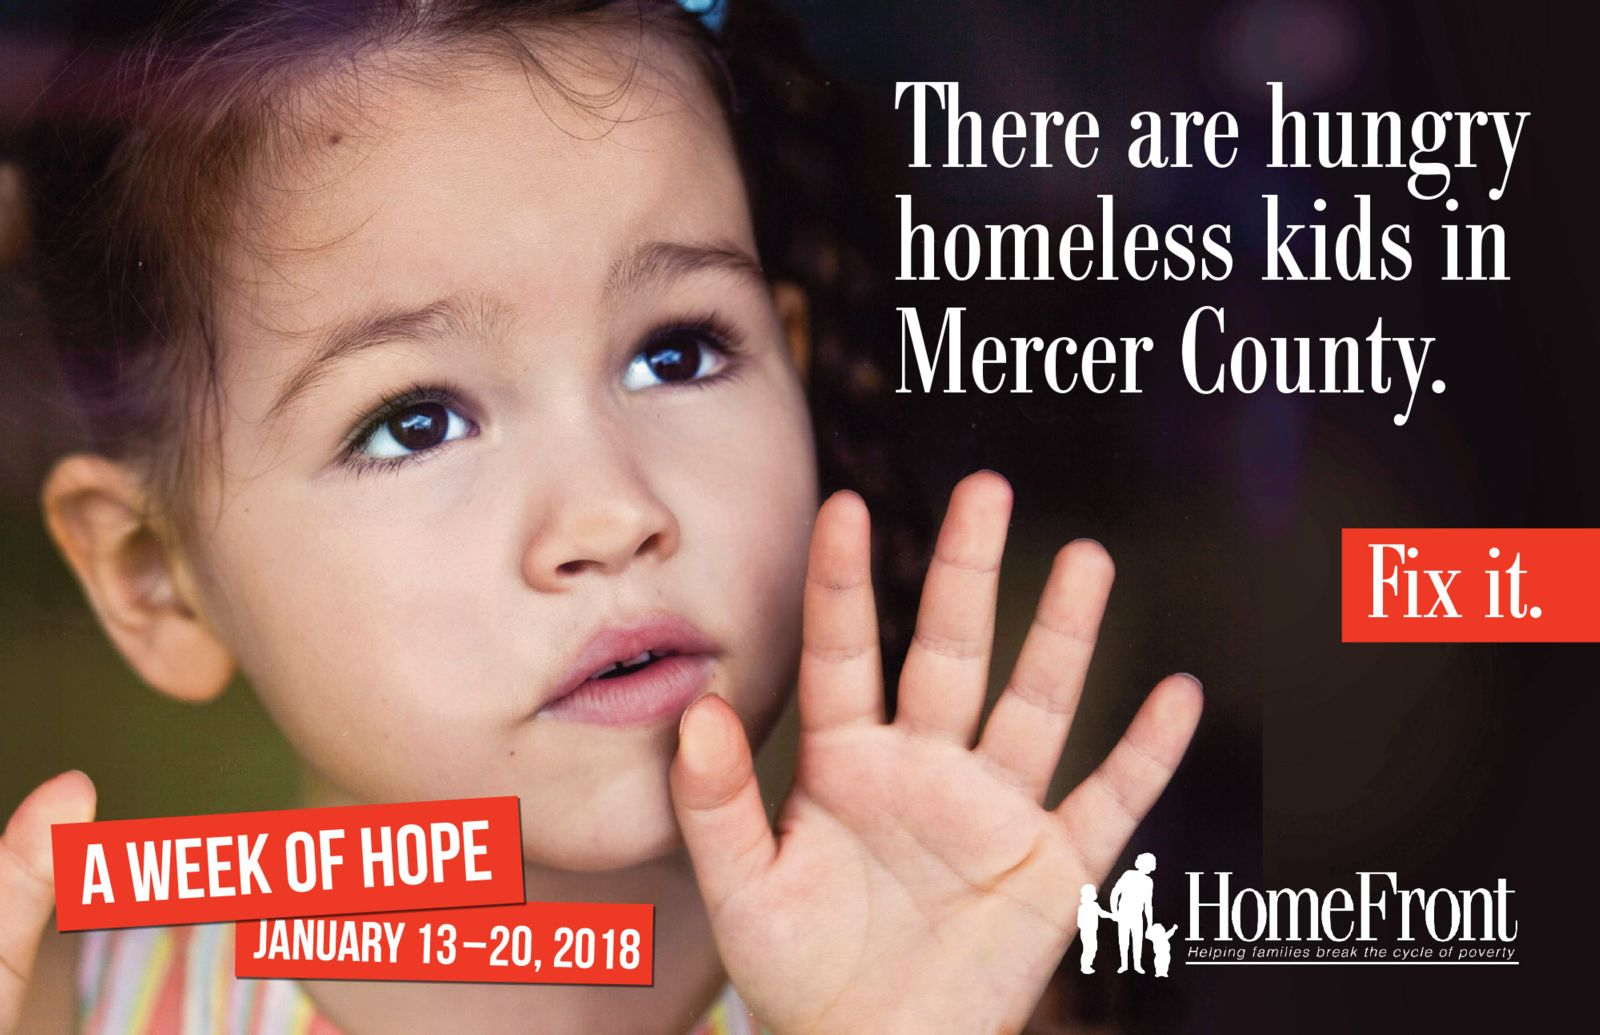 Meals On Wheels Of Mercer County Announces 11th Annual Subaru Share No6 Lt Pro Long Lasting Matte Lip Cream Homefront Will Host Their Second Week Hope A Effort With Variety Special Educational And Volunteer Opportunities That Enable